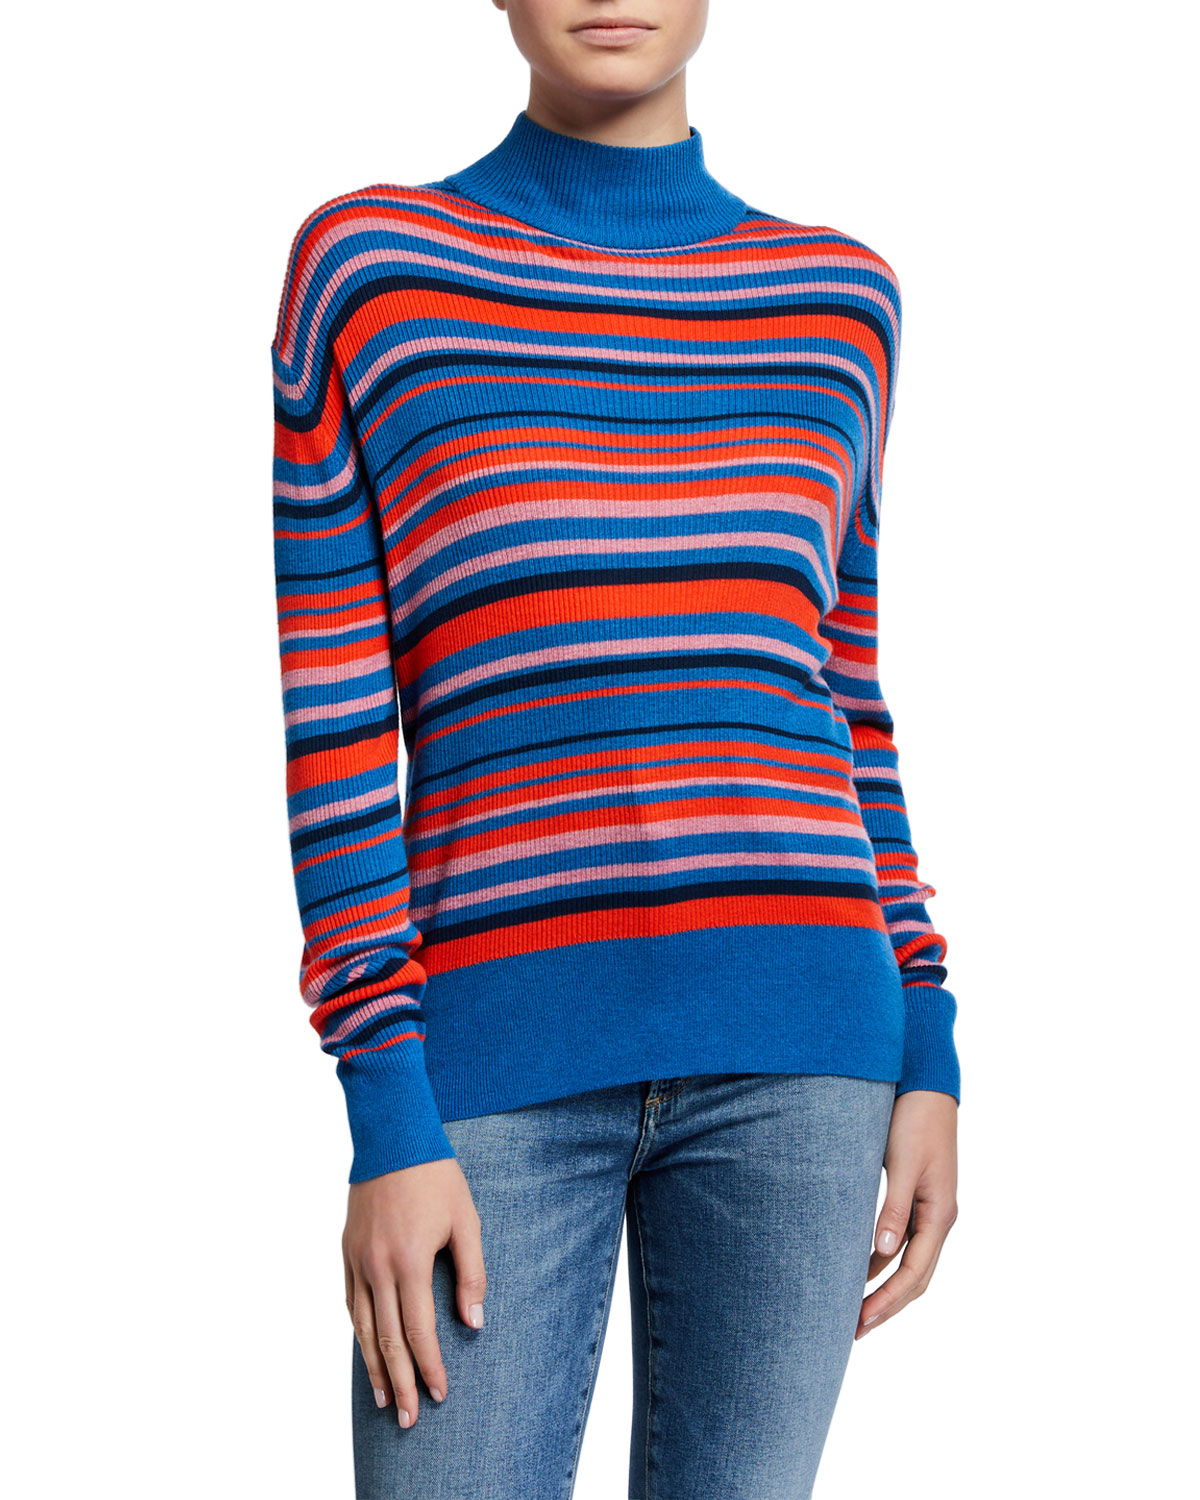 Kule Sweaters THE MARLENE STRIPED TURTLENECK SWEATER